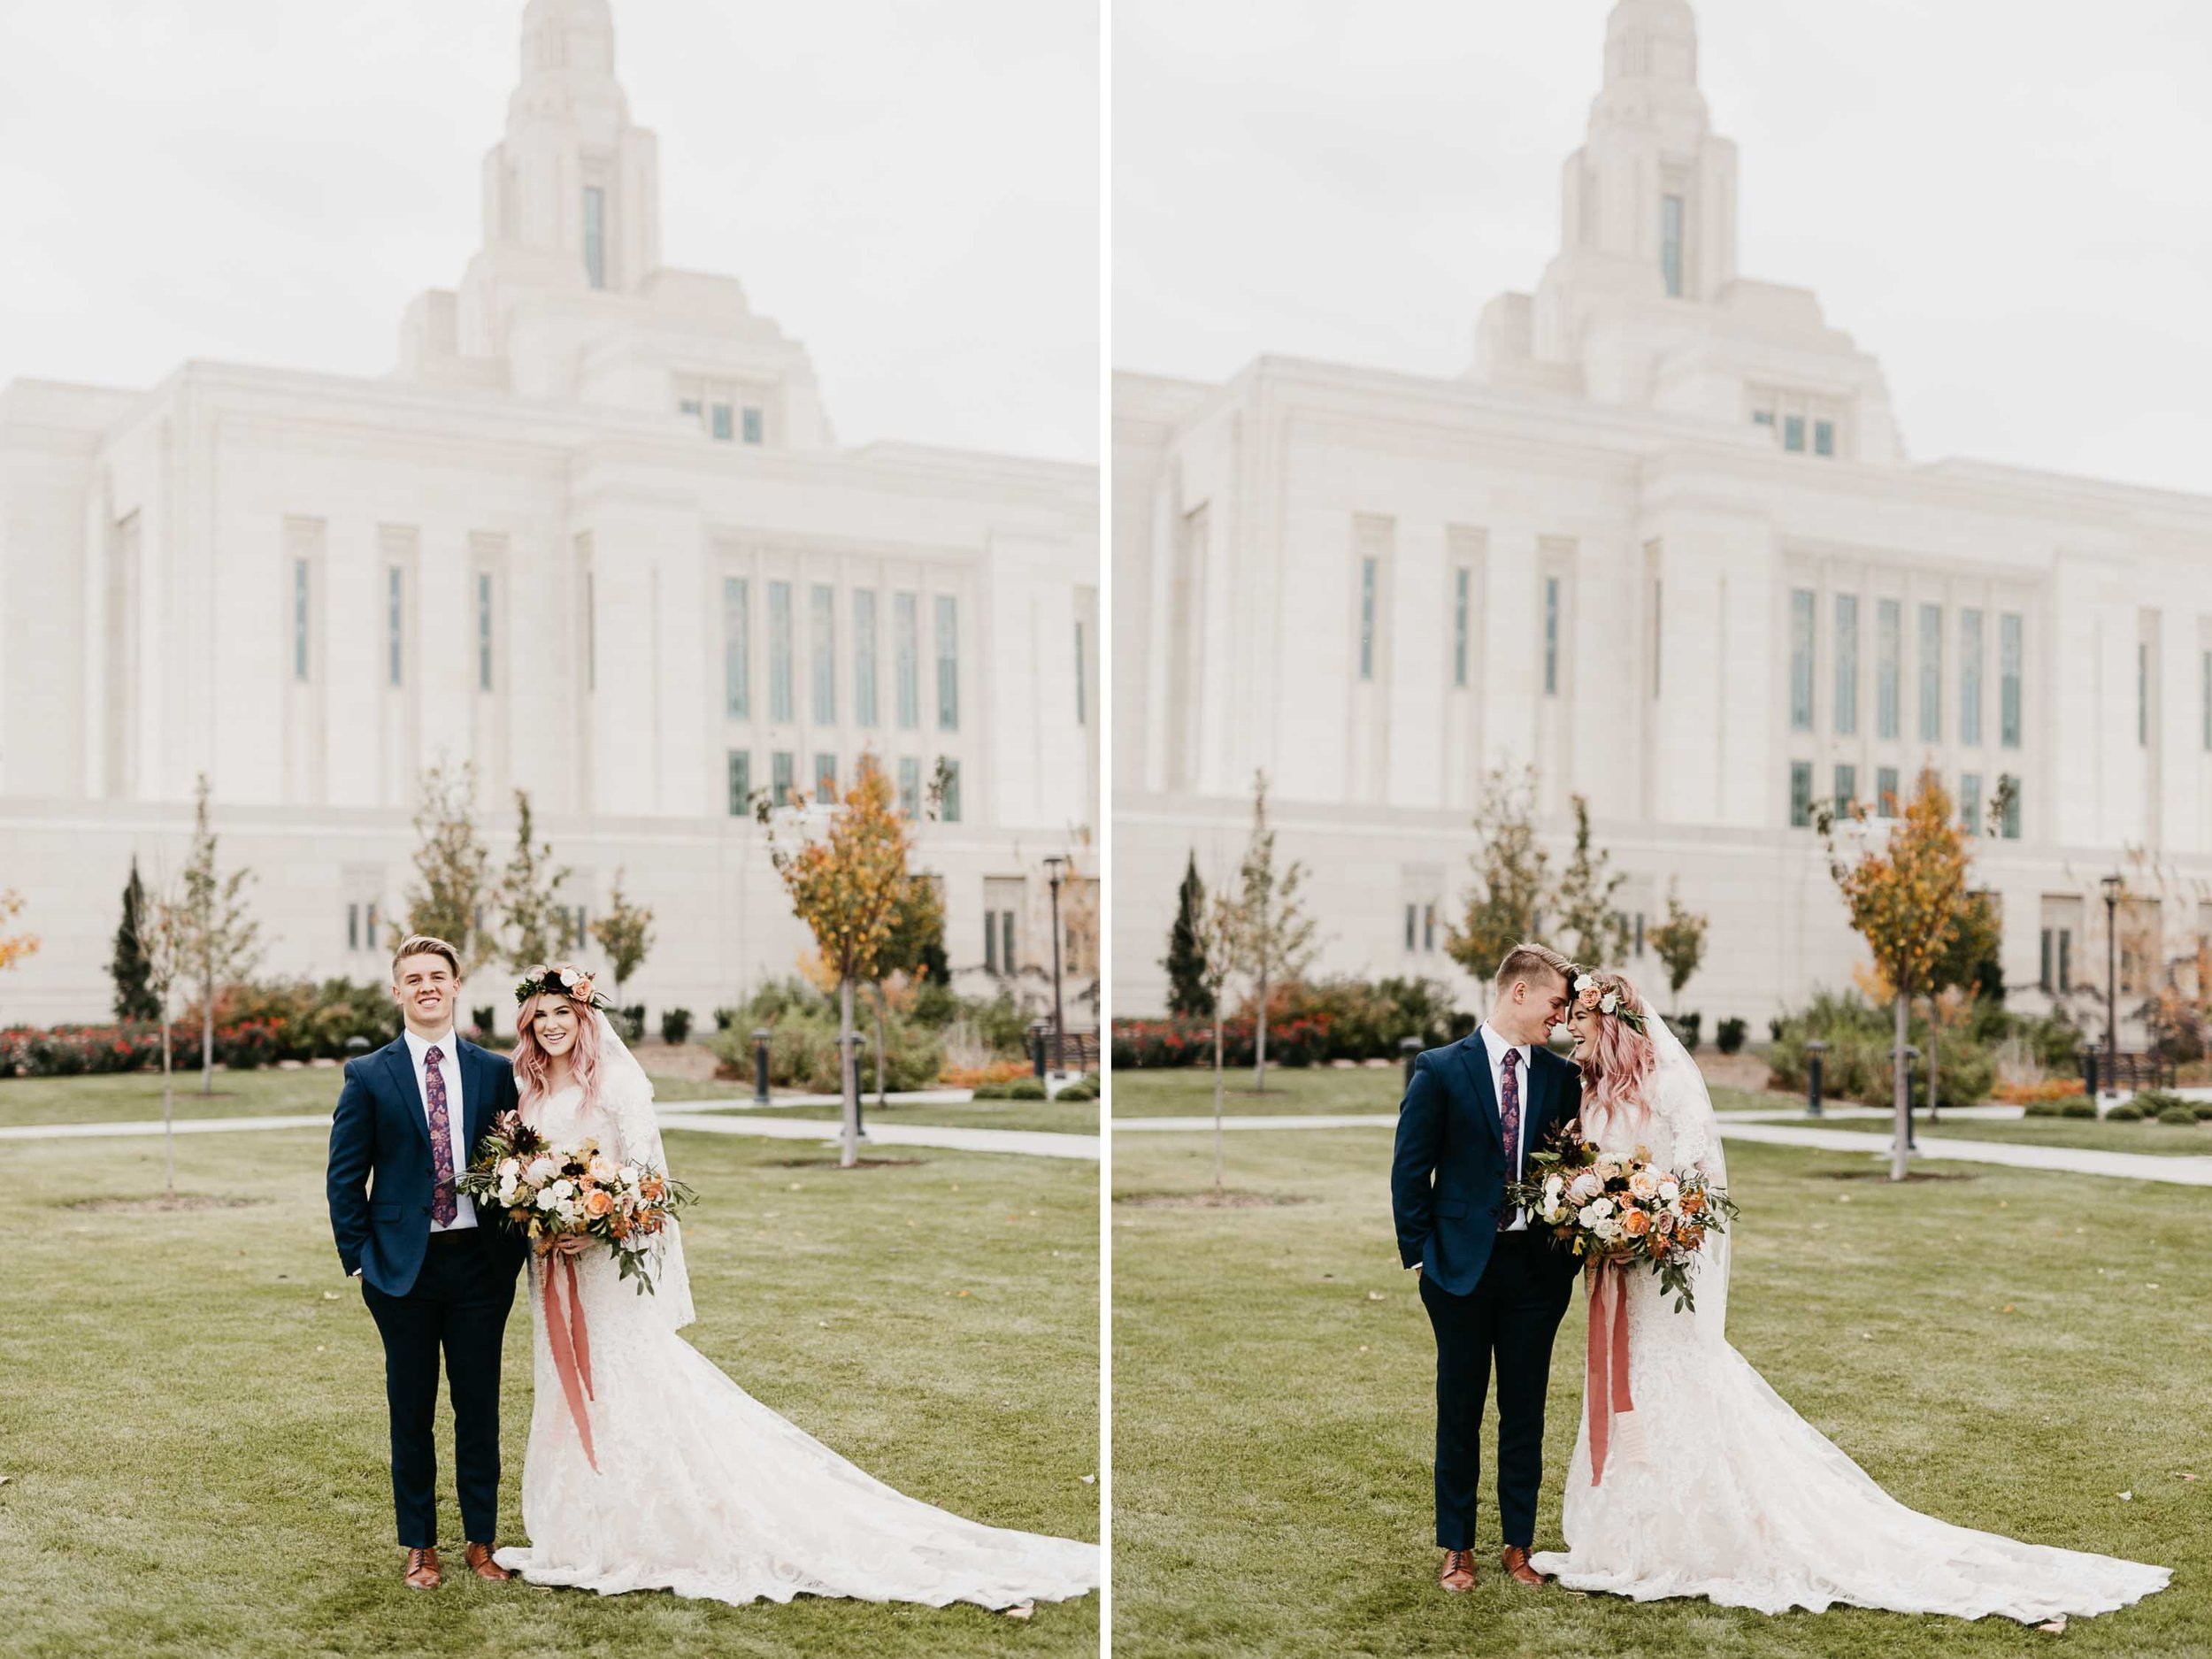 Utah-Wedding-Photographer-23.jpg